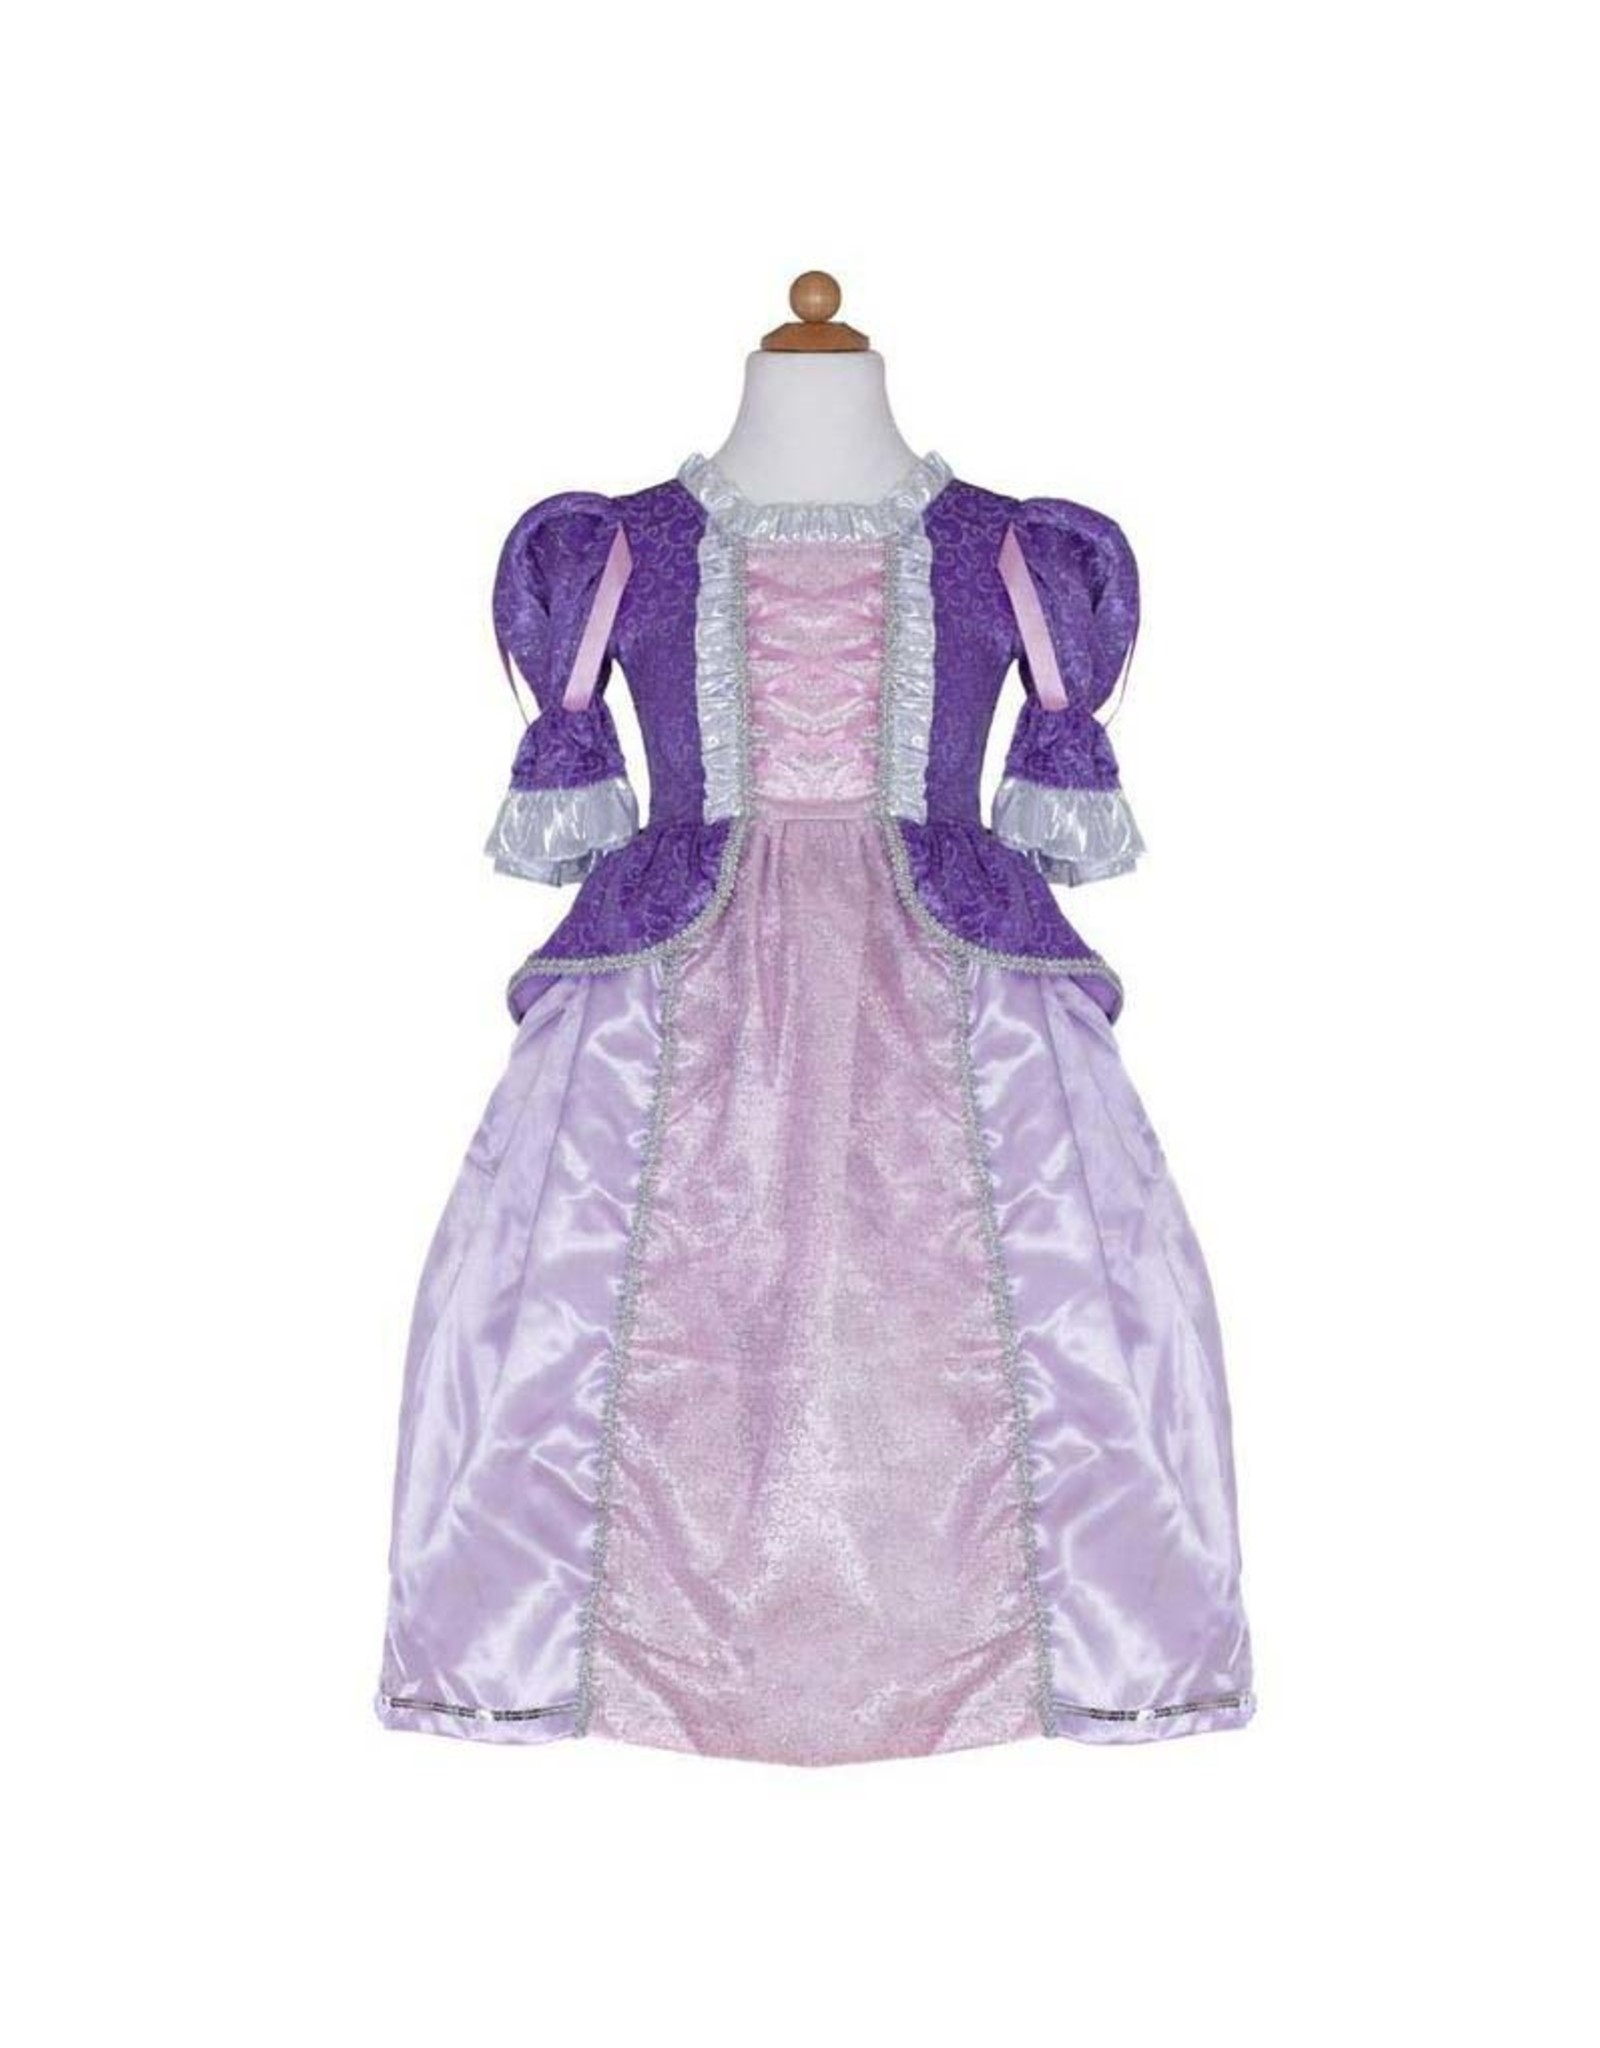 Great Pretenders Fairytale Princess, Lilac/Pink, Size 5-6